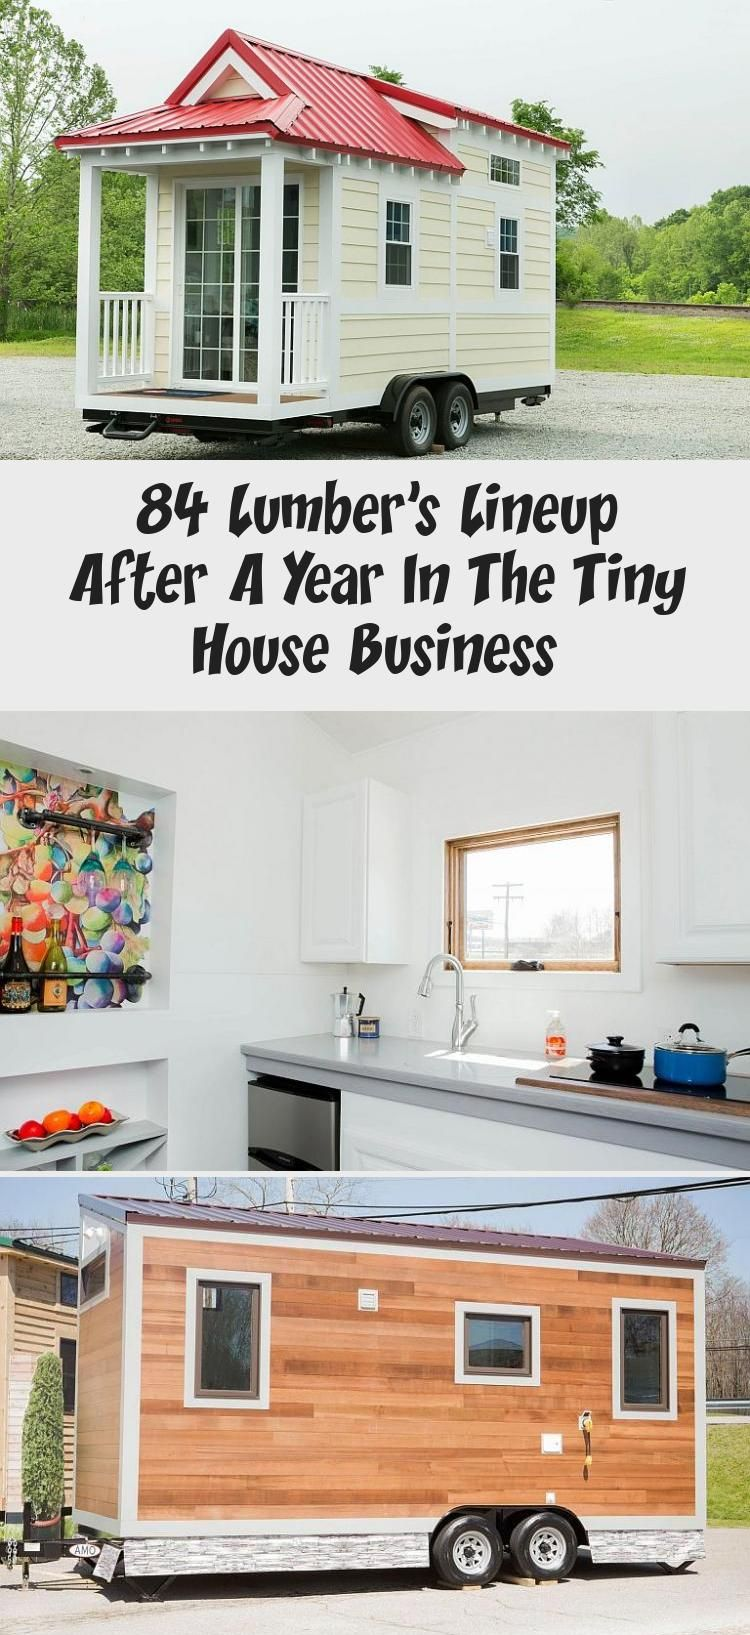 My Blog In 2020 Tiny House House 84 Lumber